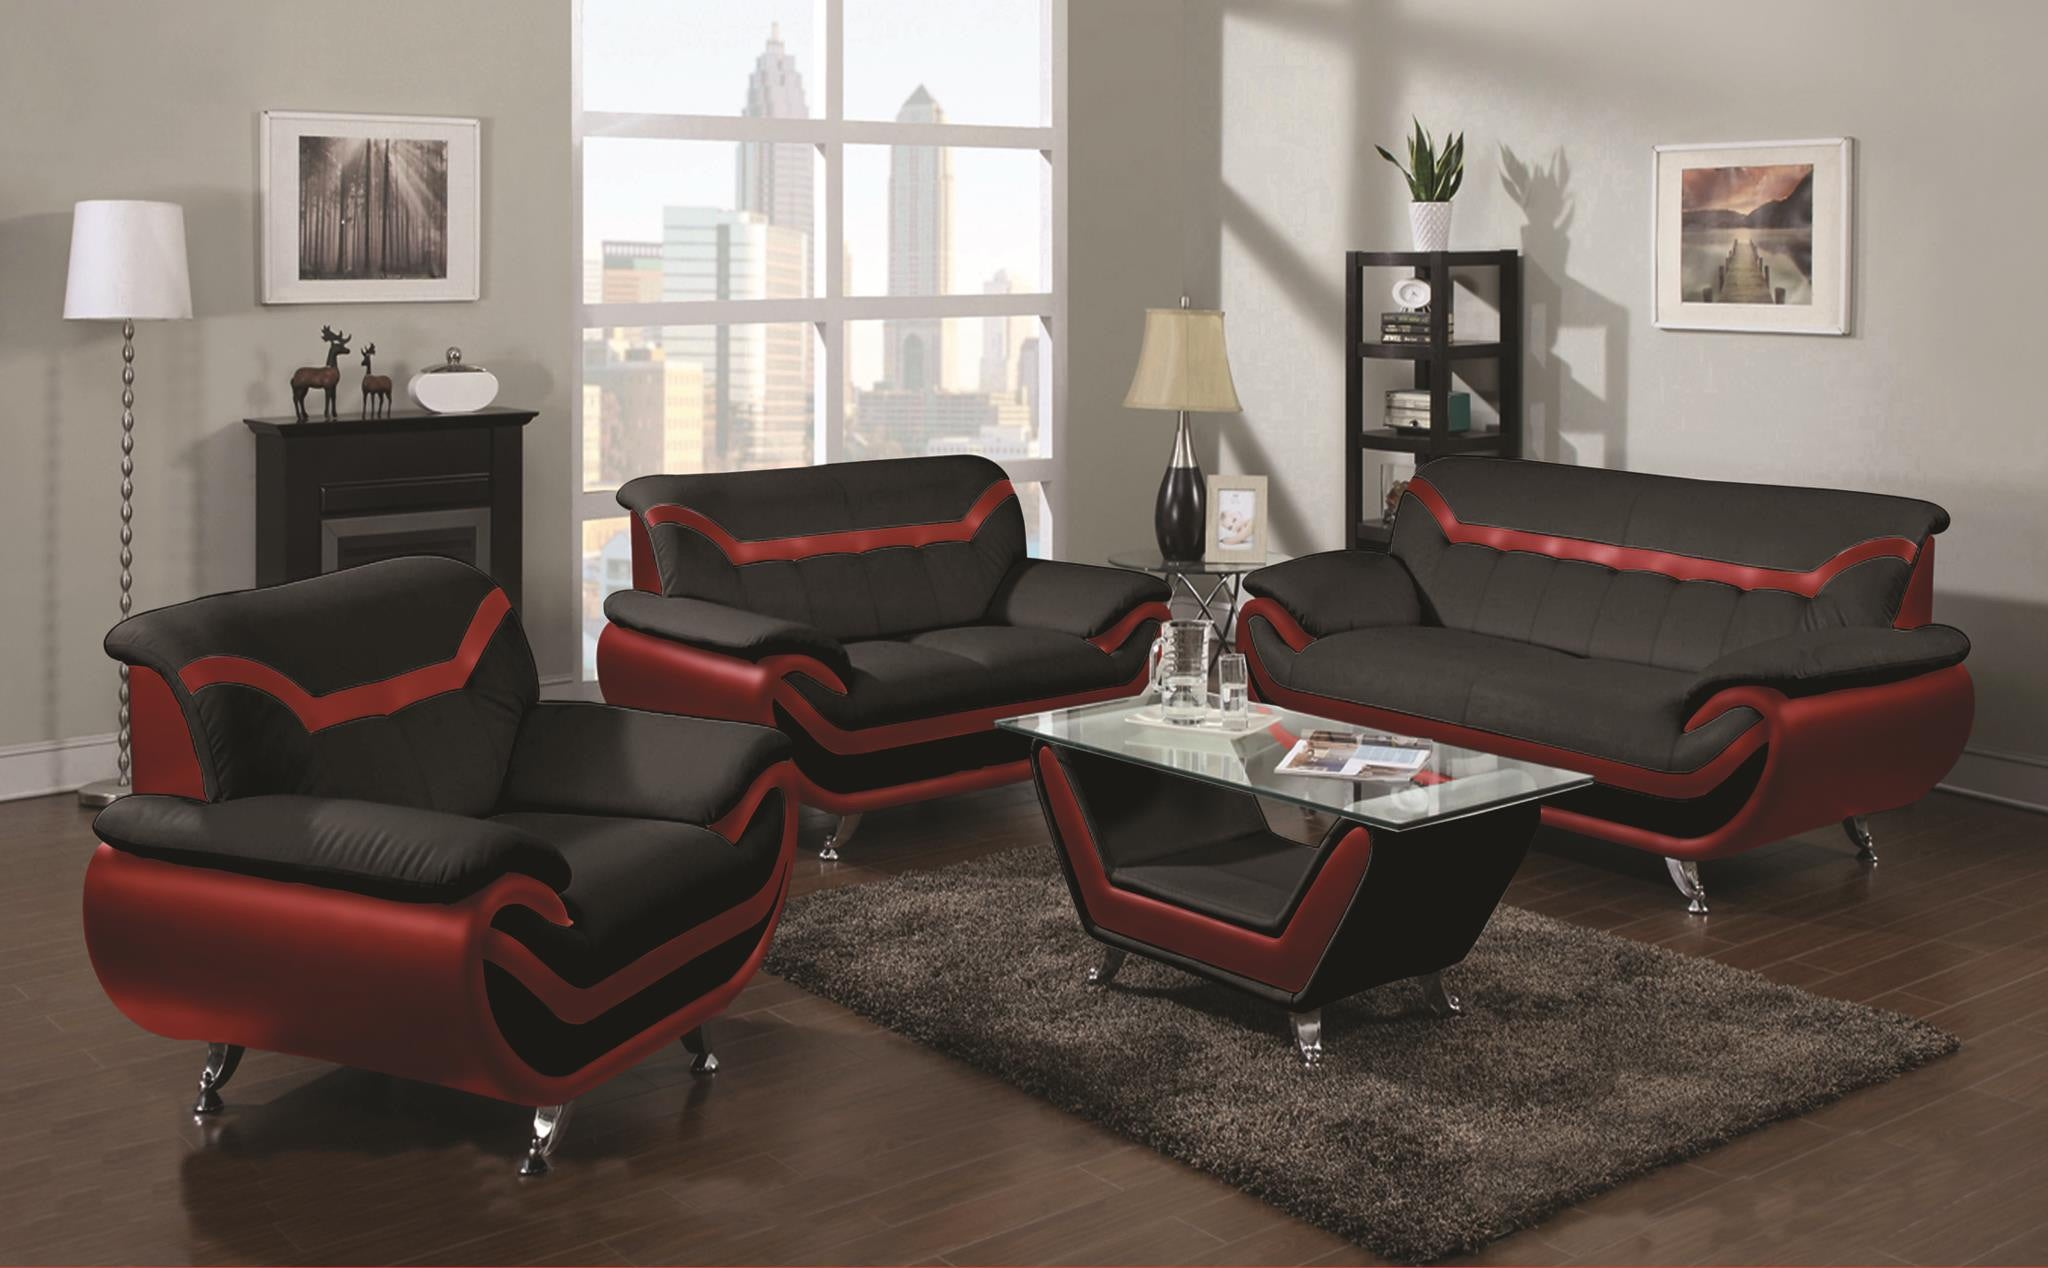 Black and red sofa set